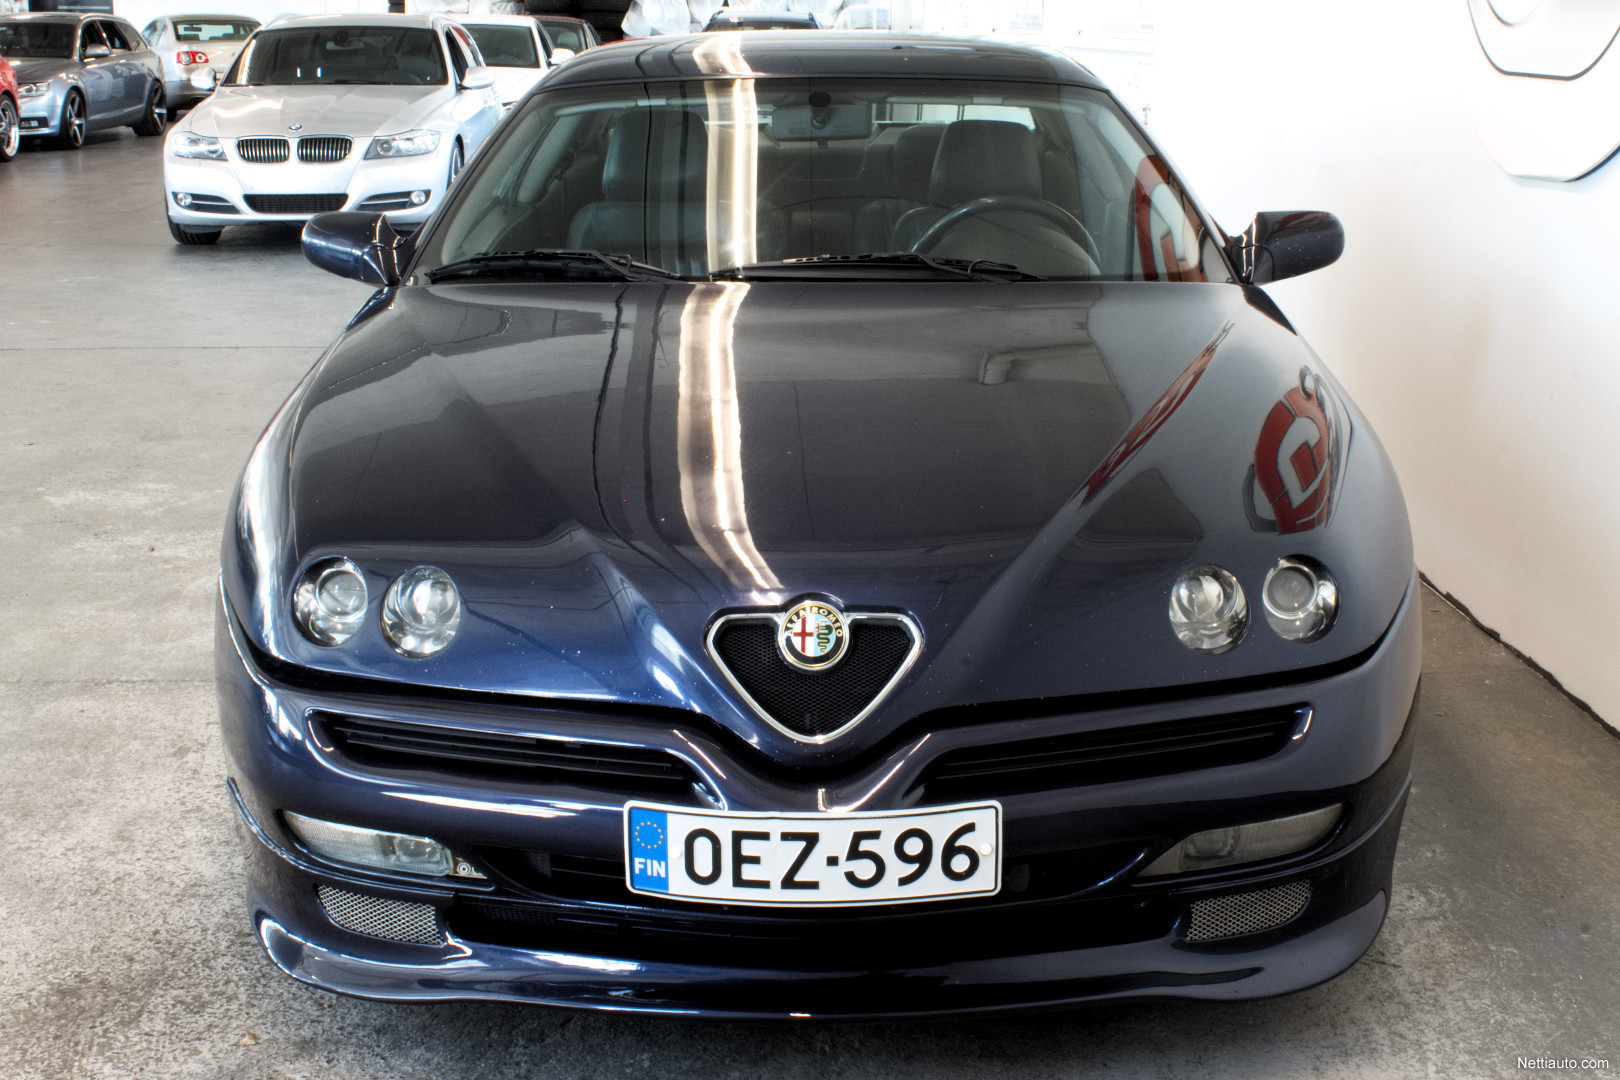 alfa romeo gtv 3 0 24 v6 cup varusteilla vaihto rahoitus coup 1998 used vehicle nettiauto. Black Bedroom Furniture Sets. Home Design Ideas